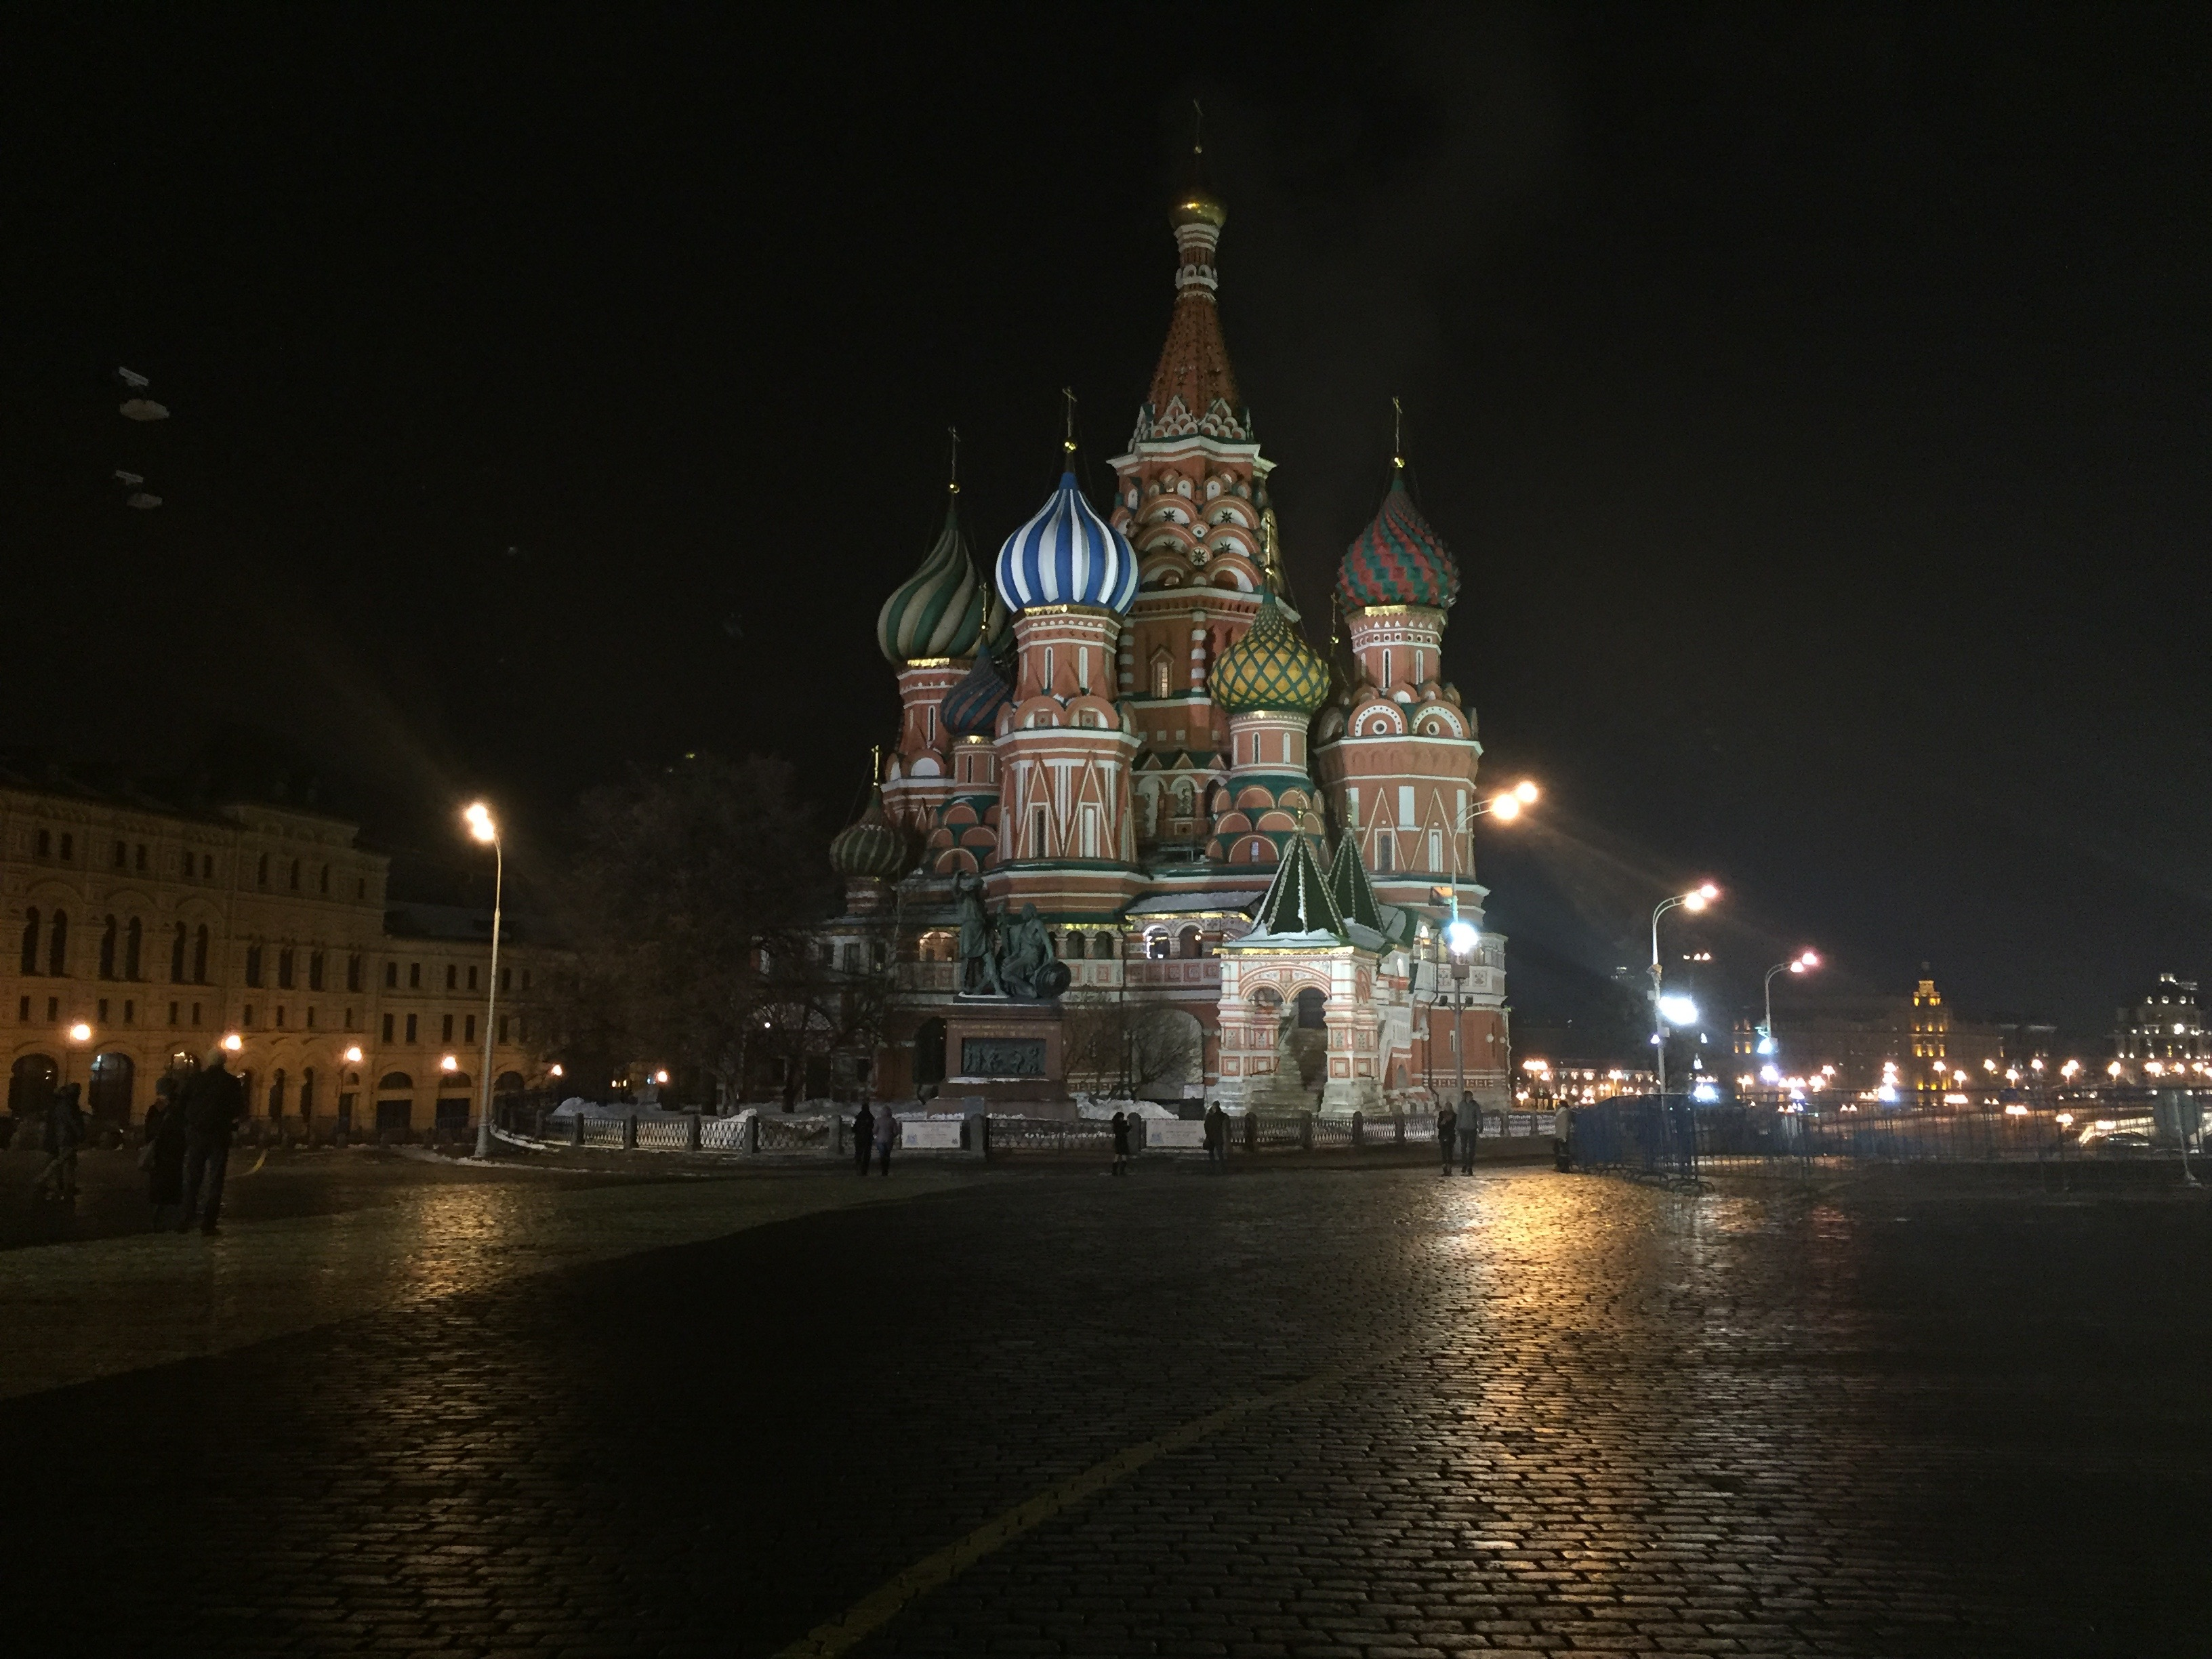 1. St Basil's Moscow